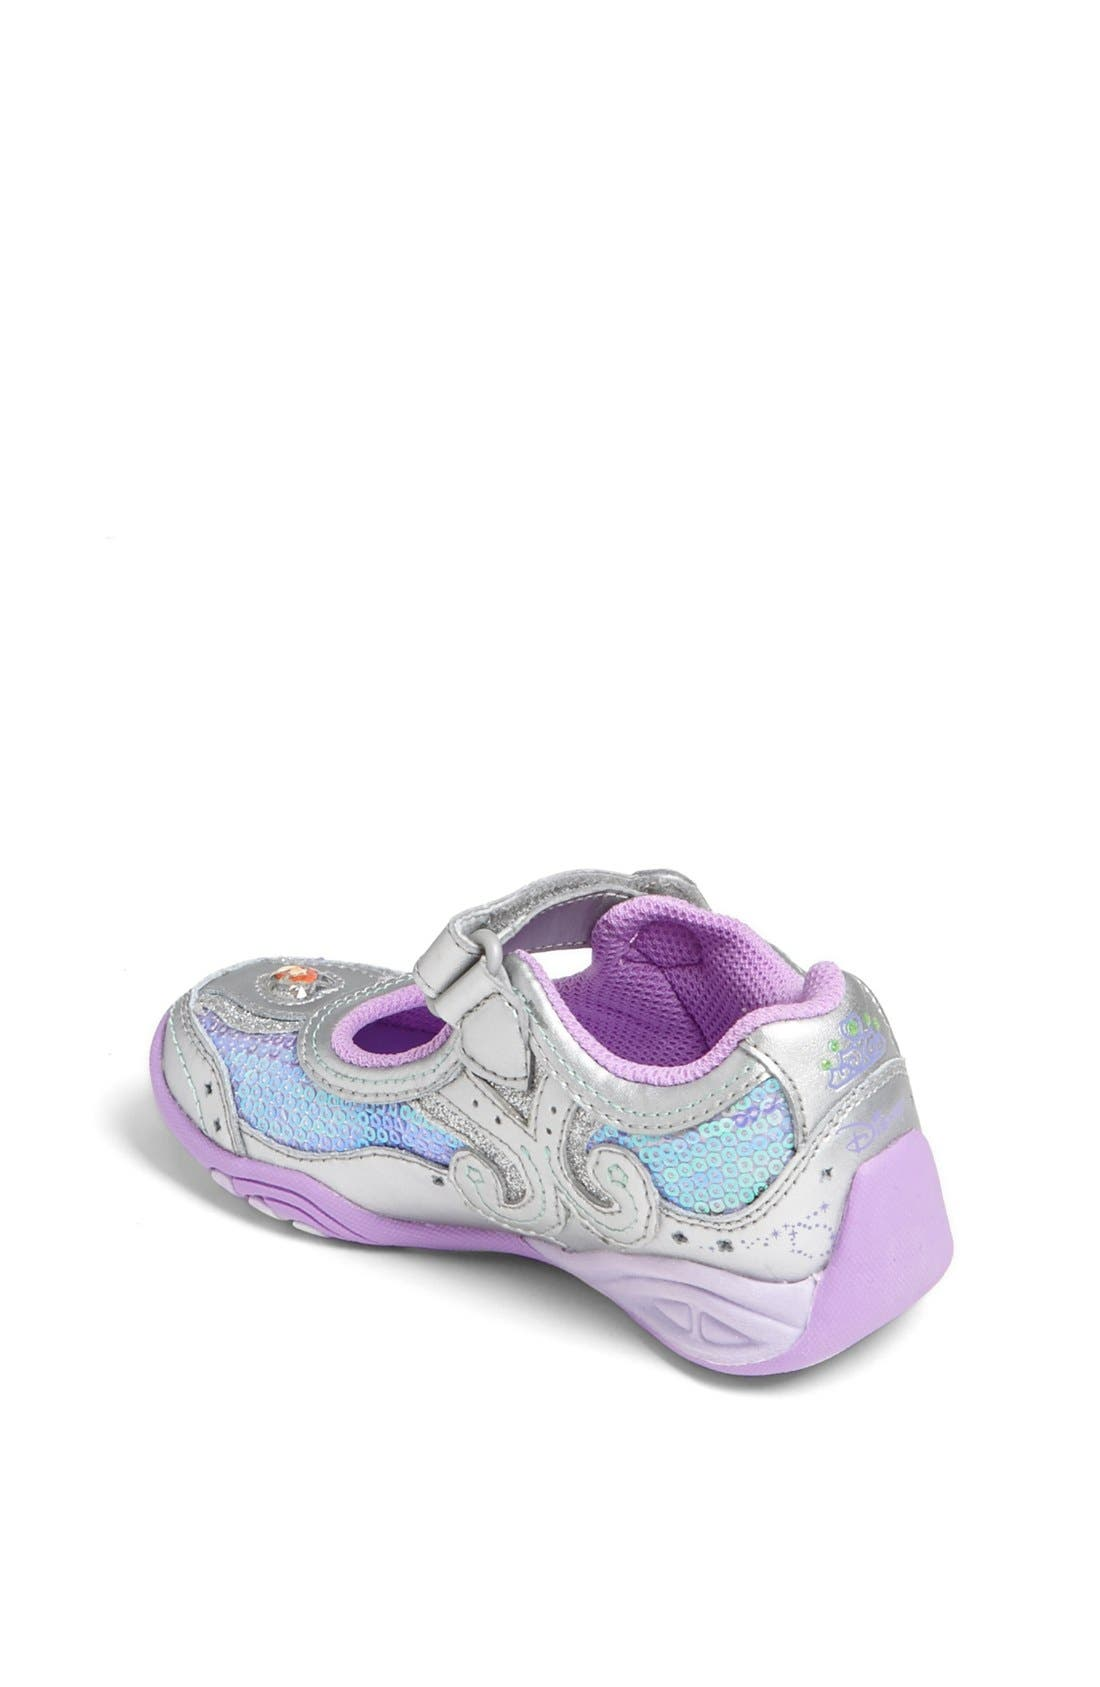 Alternate Image 2  - Stride Rite 'Disney Wish Lights  - Ariel'  Sneaker (Toddler & Little Kid)